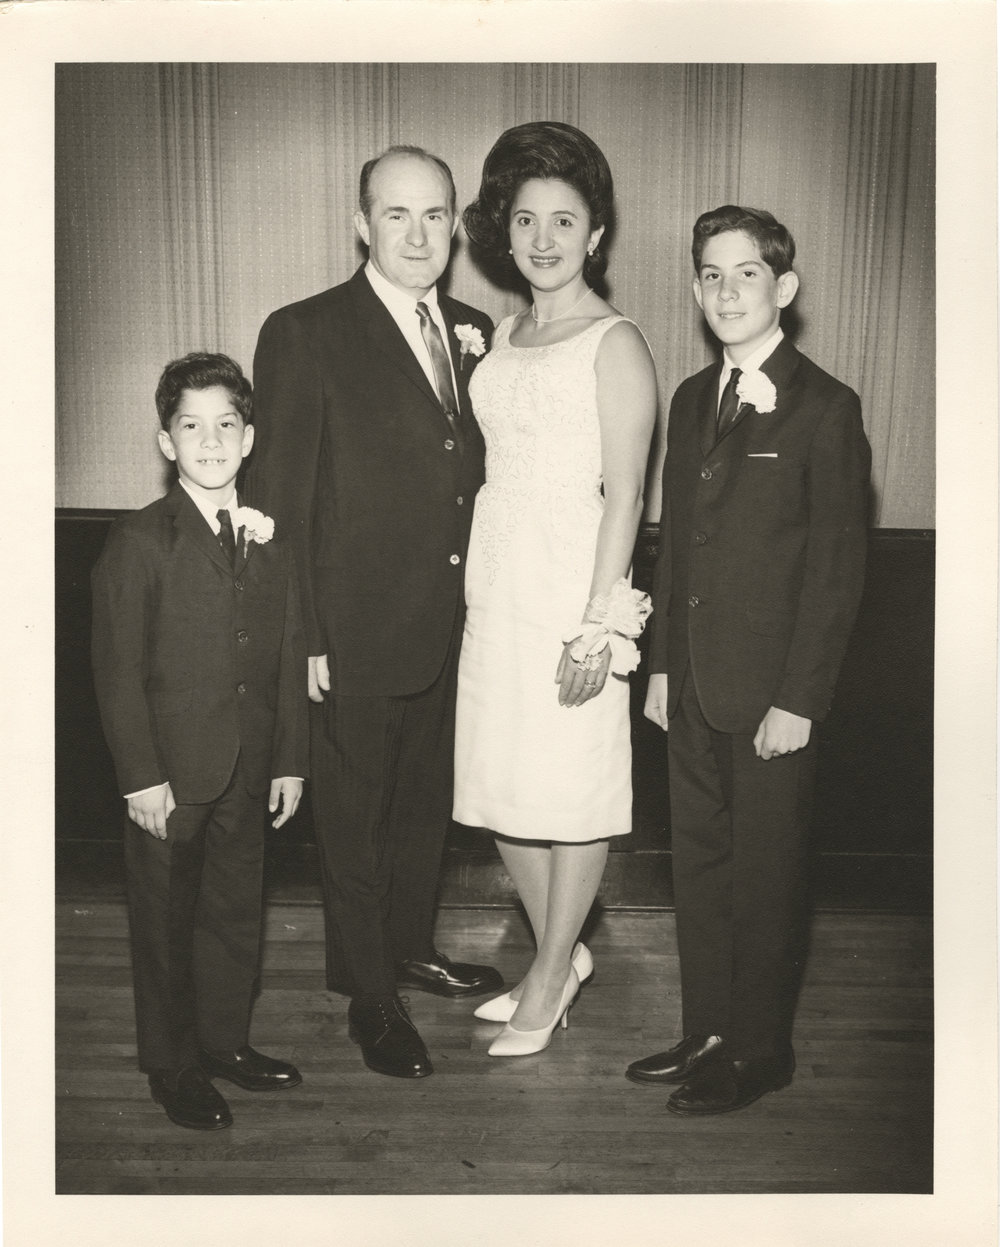 A family photograph at his Bar Mitzvah, featuring (L to R) my uncle, grandfather, grandmother, and father (1963).